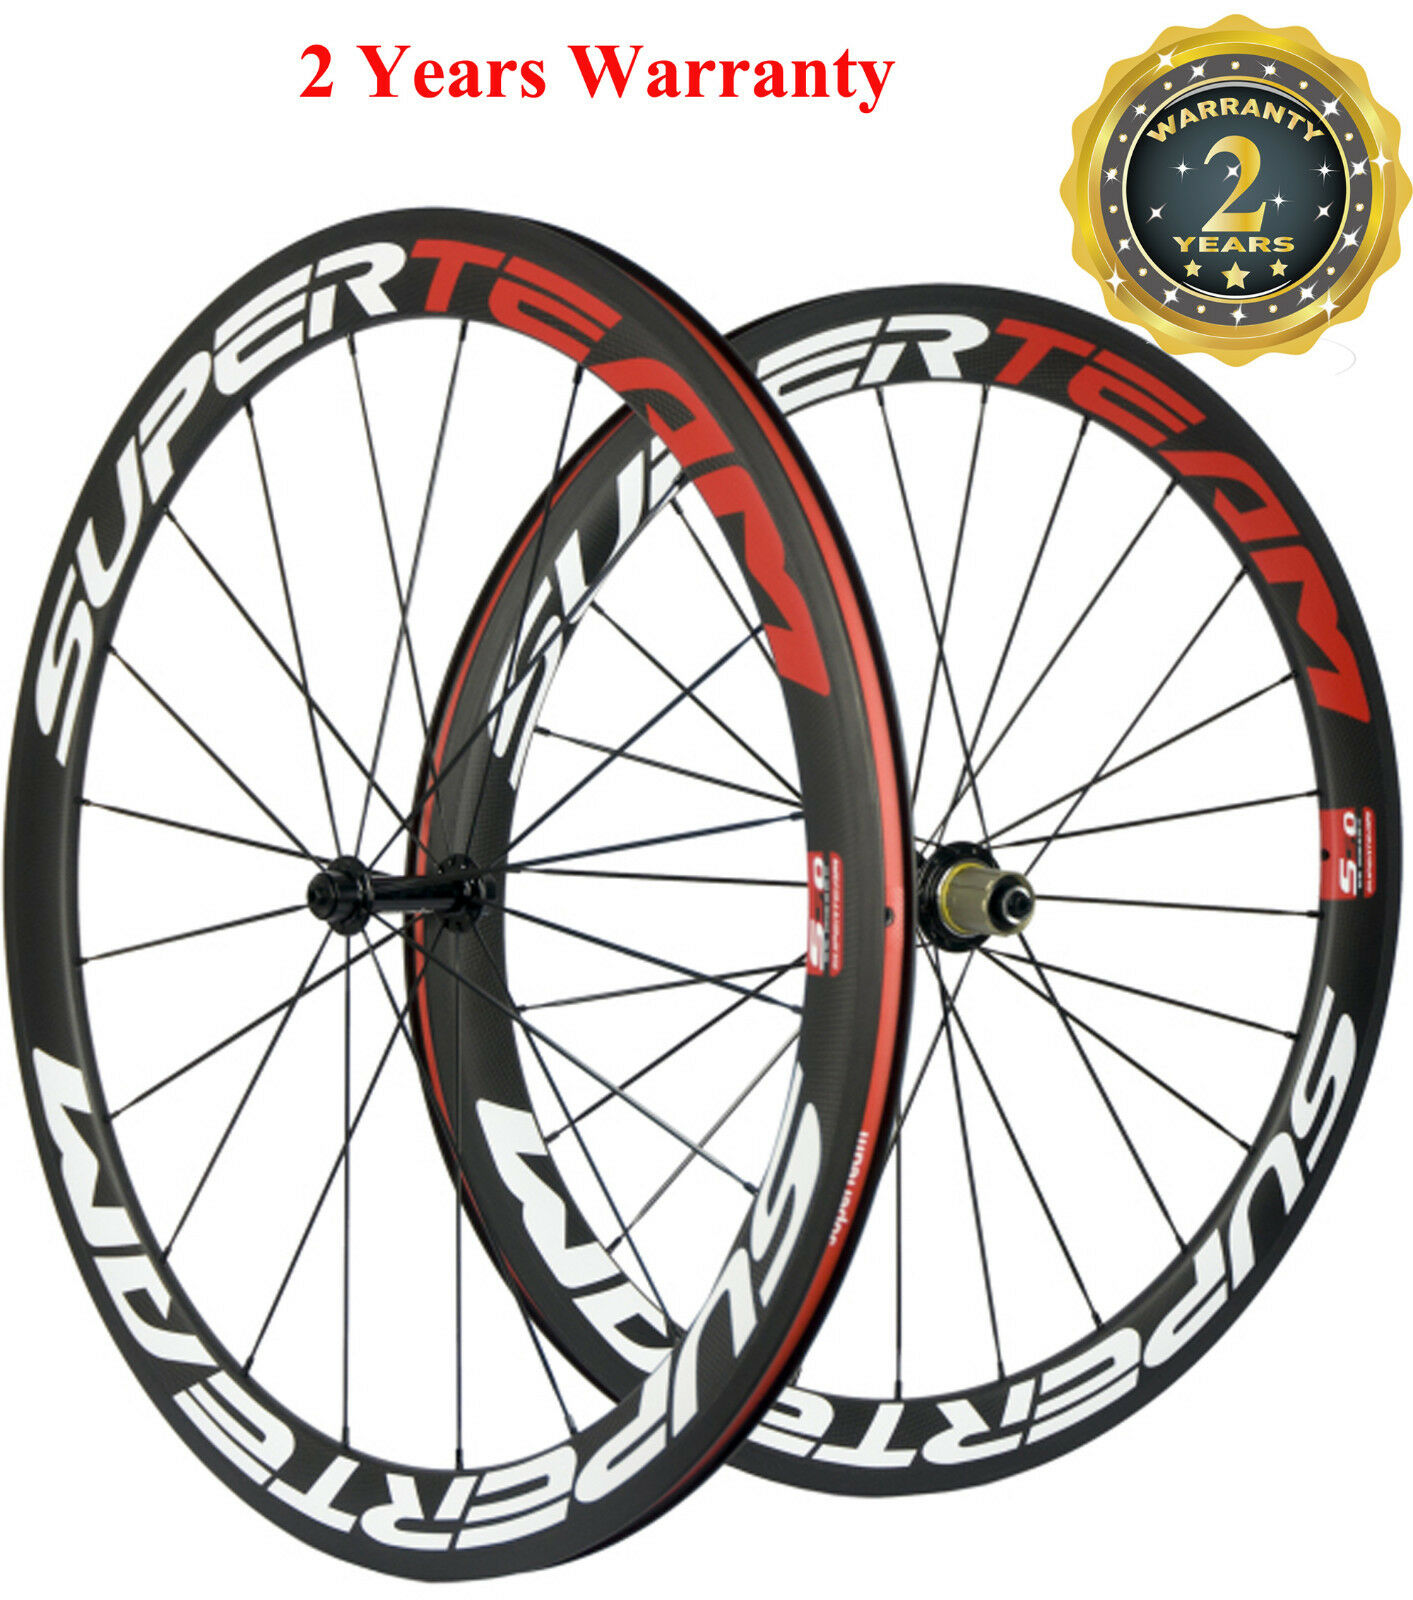 Full Carbon Fiber Wheels Bicycle Wheelset 50mm 700C  Clincher Wheels For Shimano  unique design